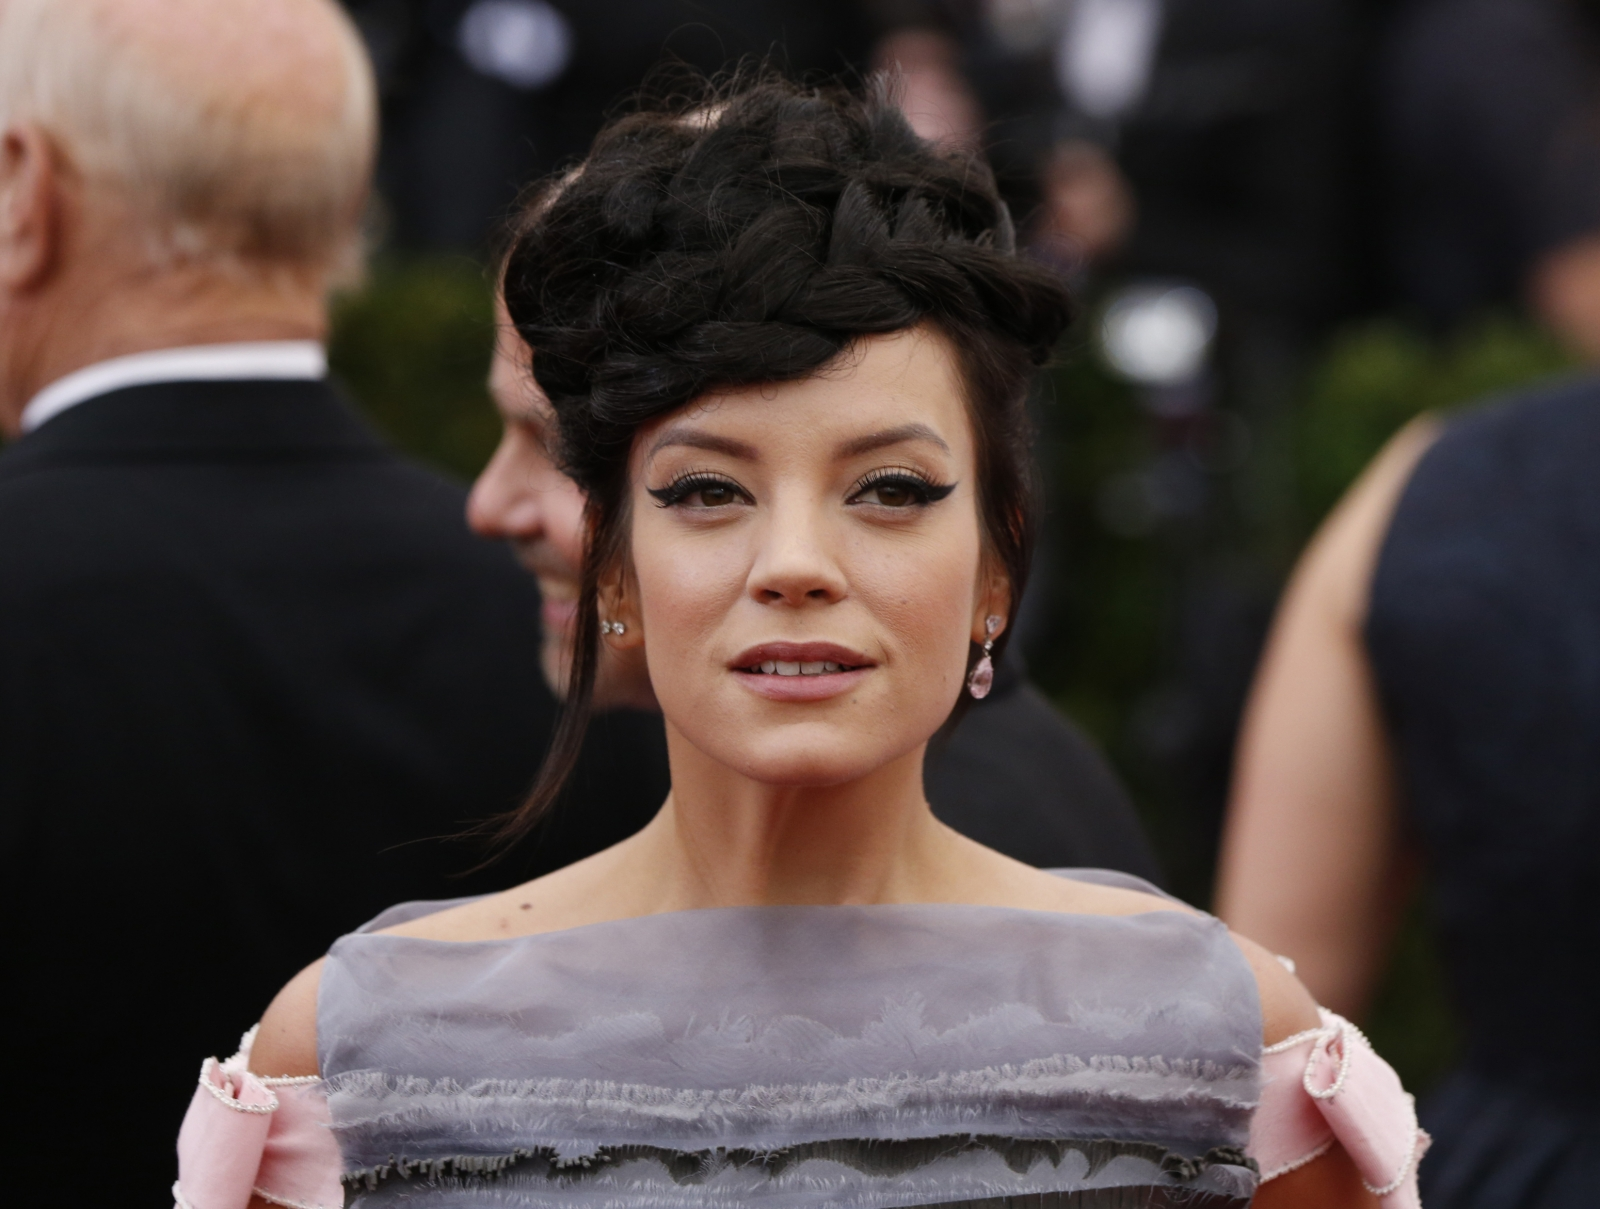 Lily Allen's 'would have been raped by somebody else' comment on Rochdale abuse victims sparks outrage